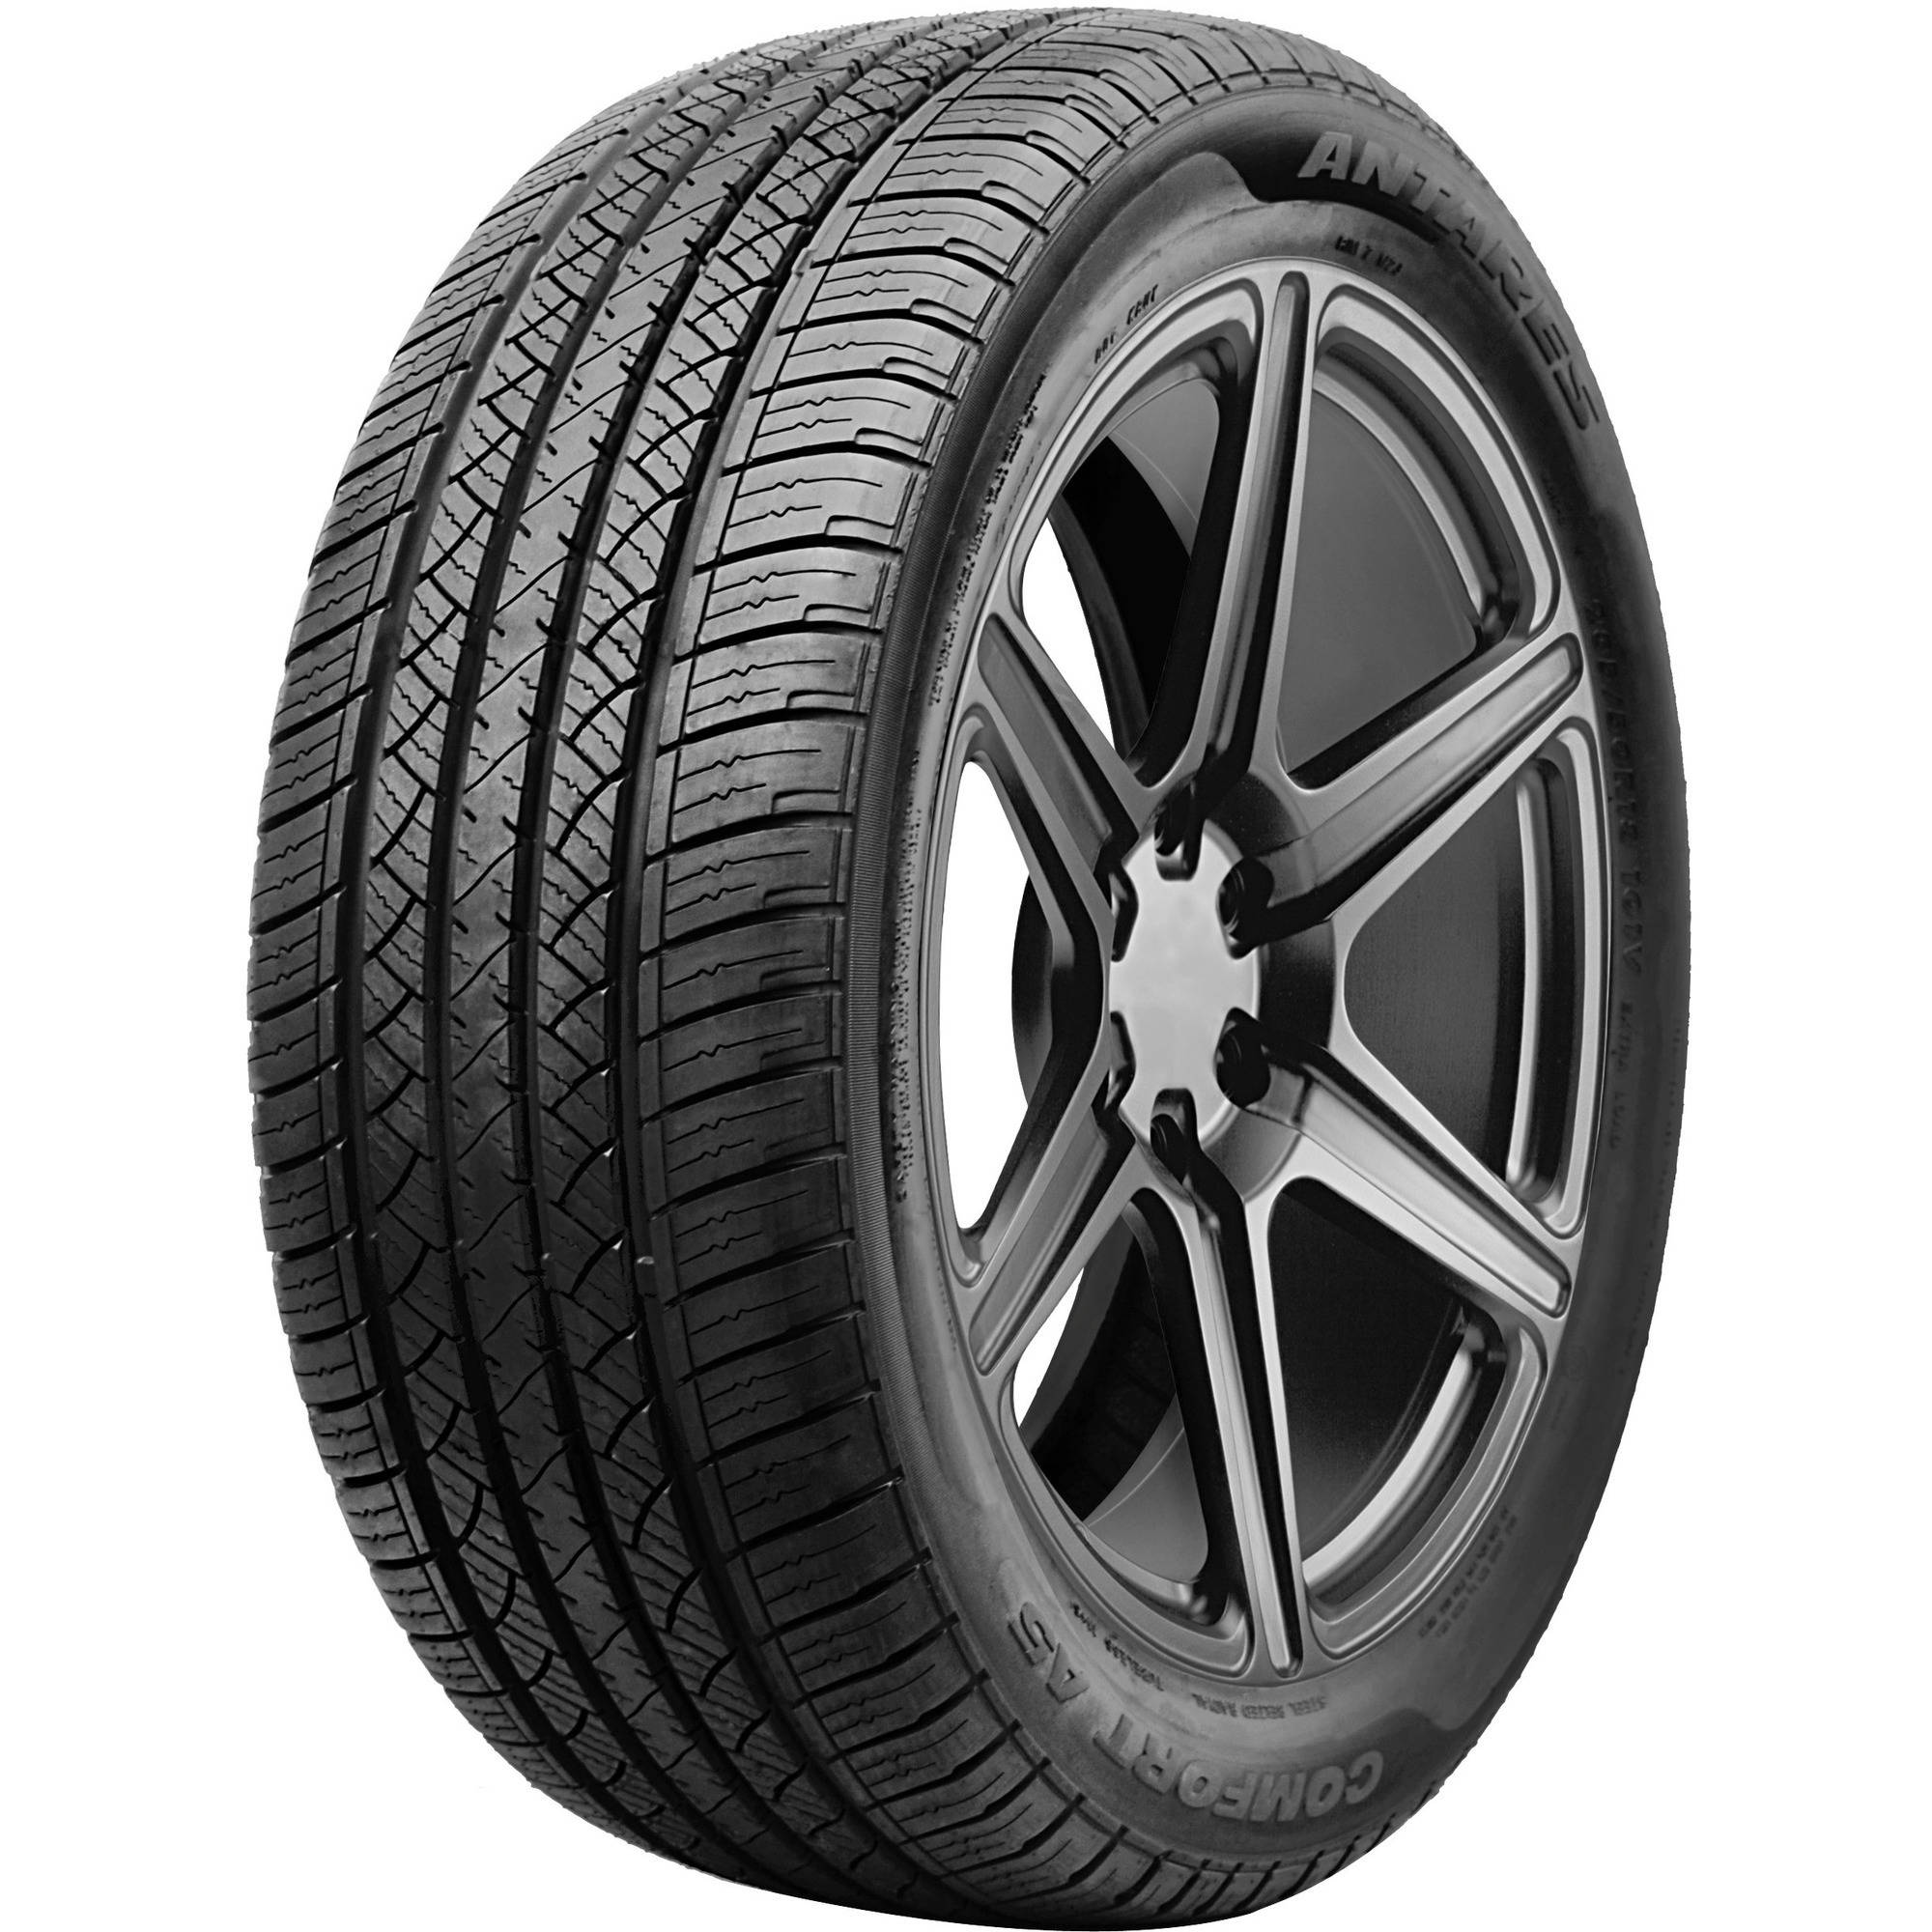 Antares Comfort A5 265 70R16 112S Tire by Antares